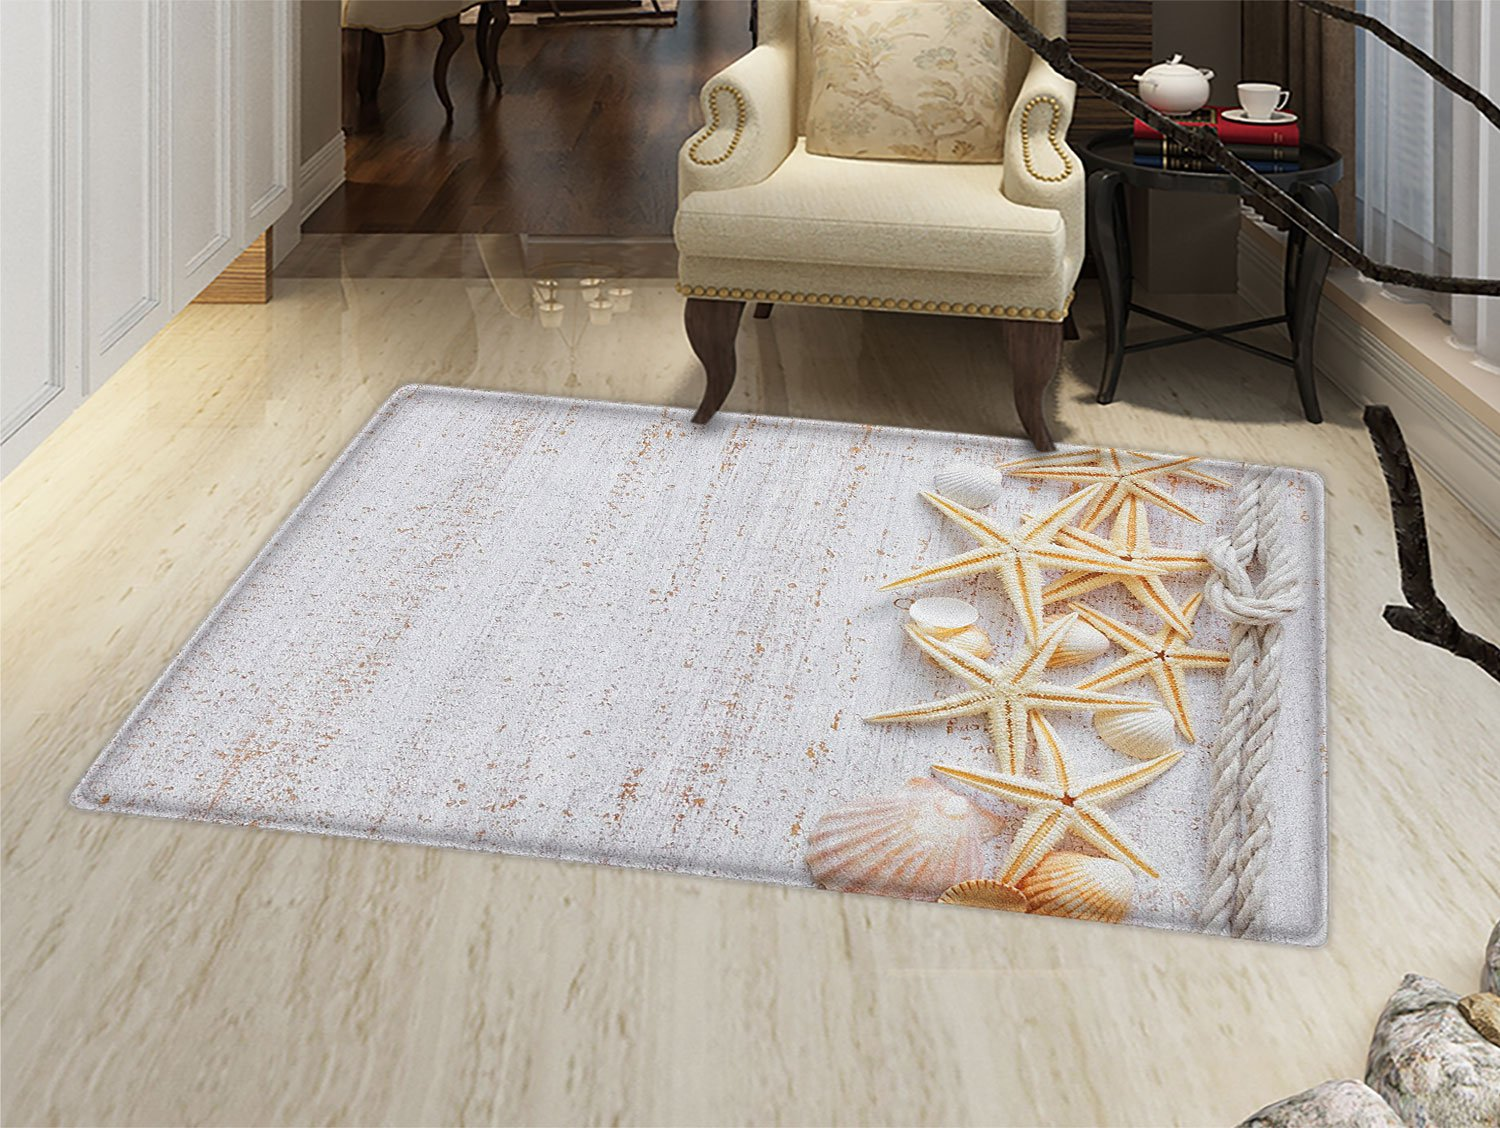 smallbeefly Seashells Bath Mats Carpet Seashells and Starfish with Navy Rope in Vertical Direction Wood Surface Ocean Beach Floor Mat Pattern Ivory